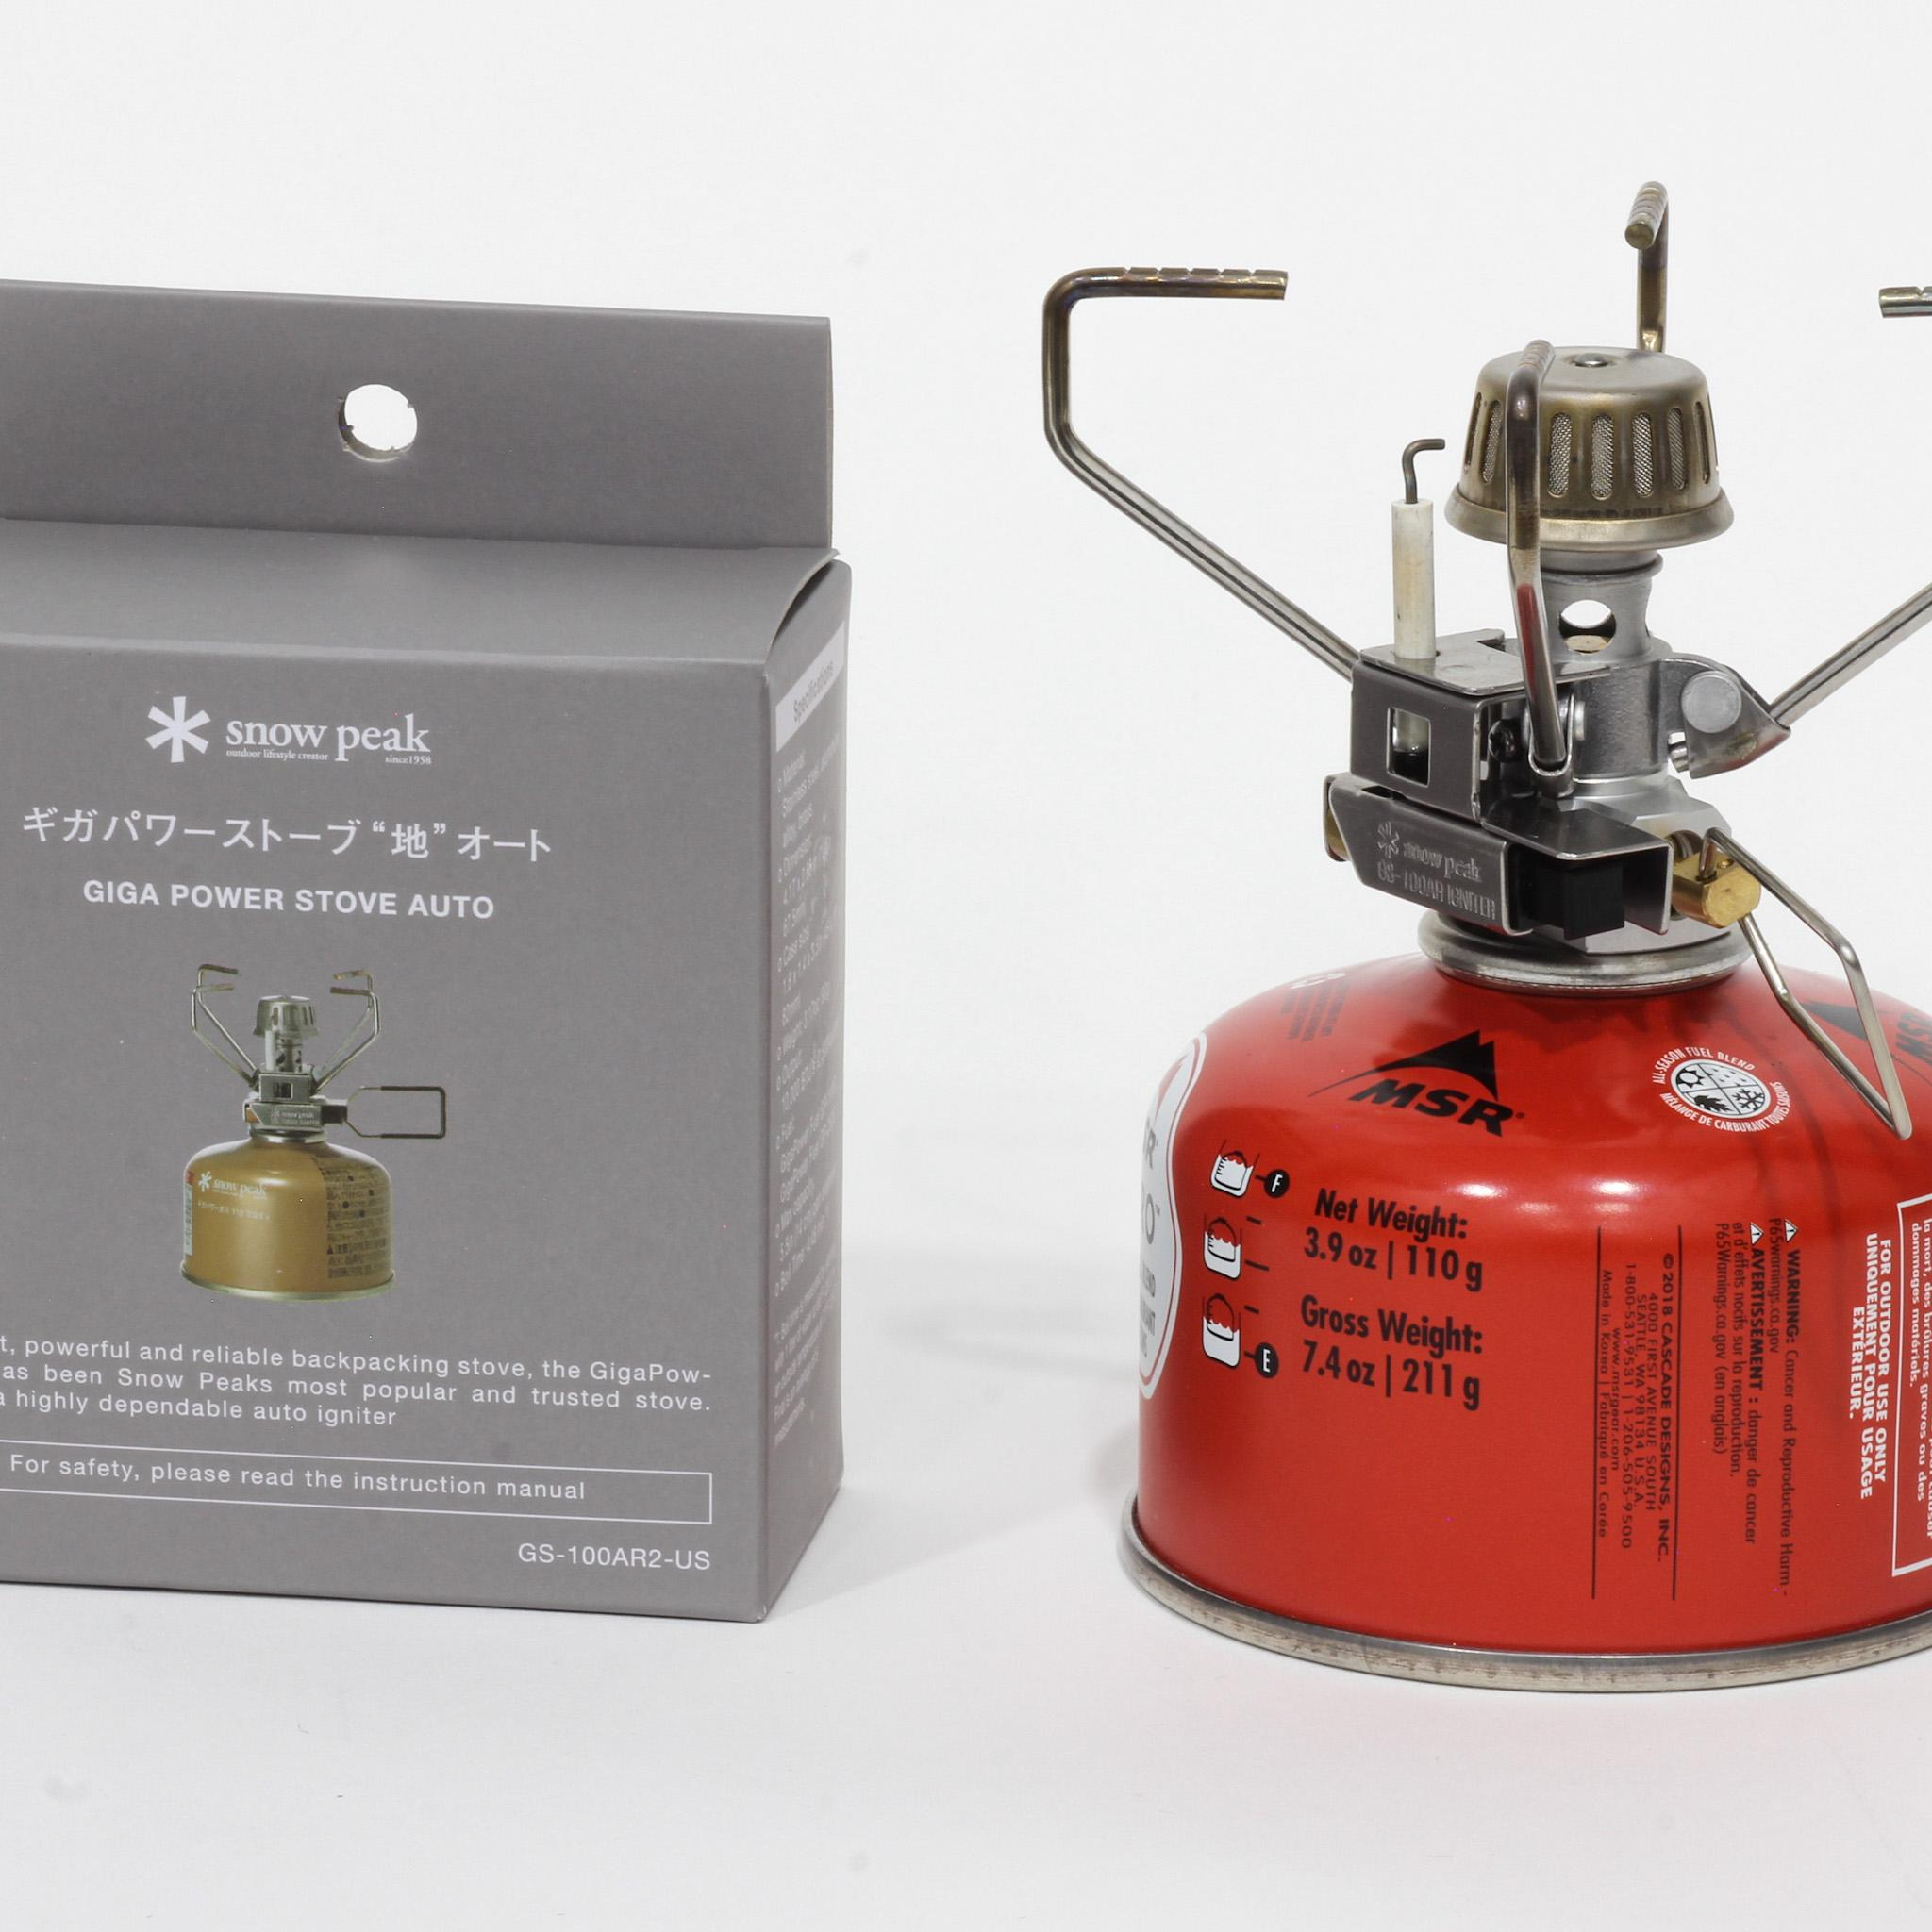 Snow Peak Self-Igniting GigaPower 2.0 Stove